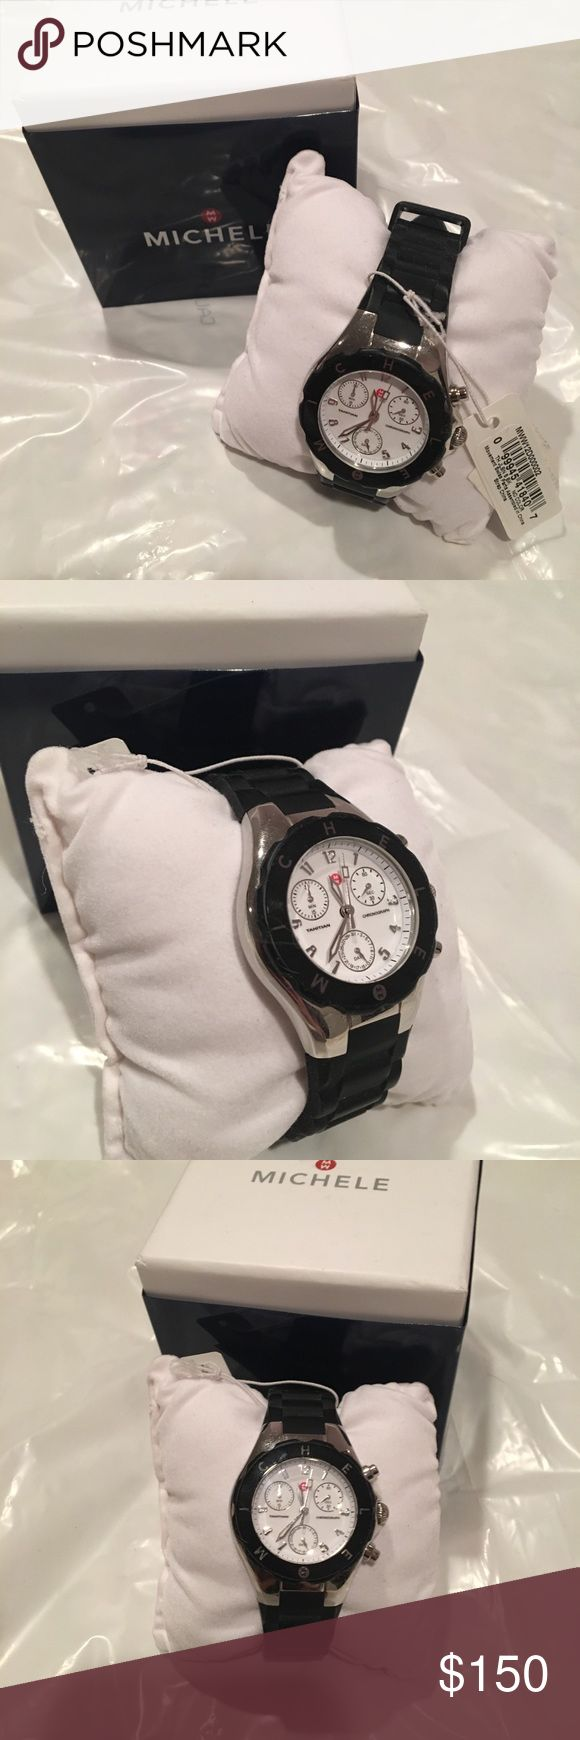 Michele watch Black rubber band michele watch. Very comfortable and great size! Michele Accessories Watches